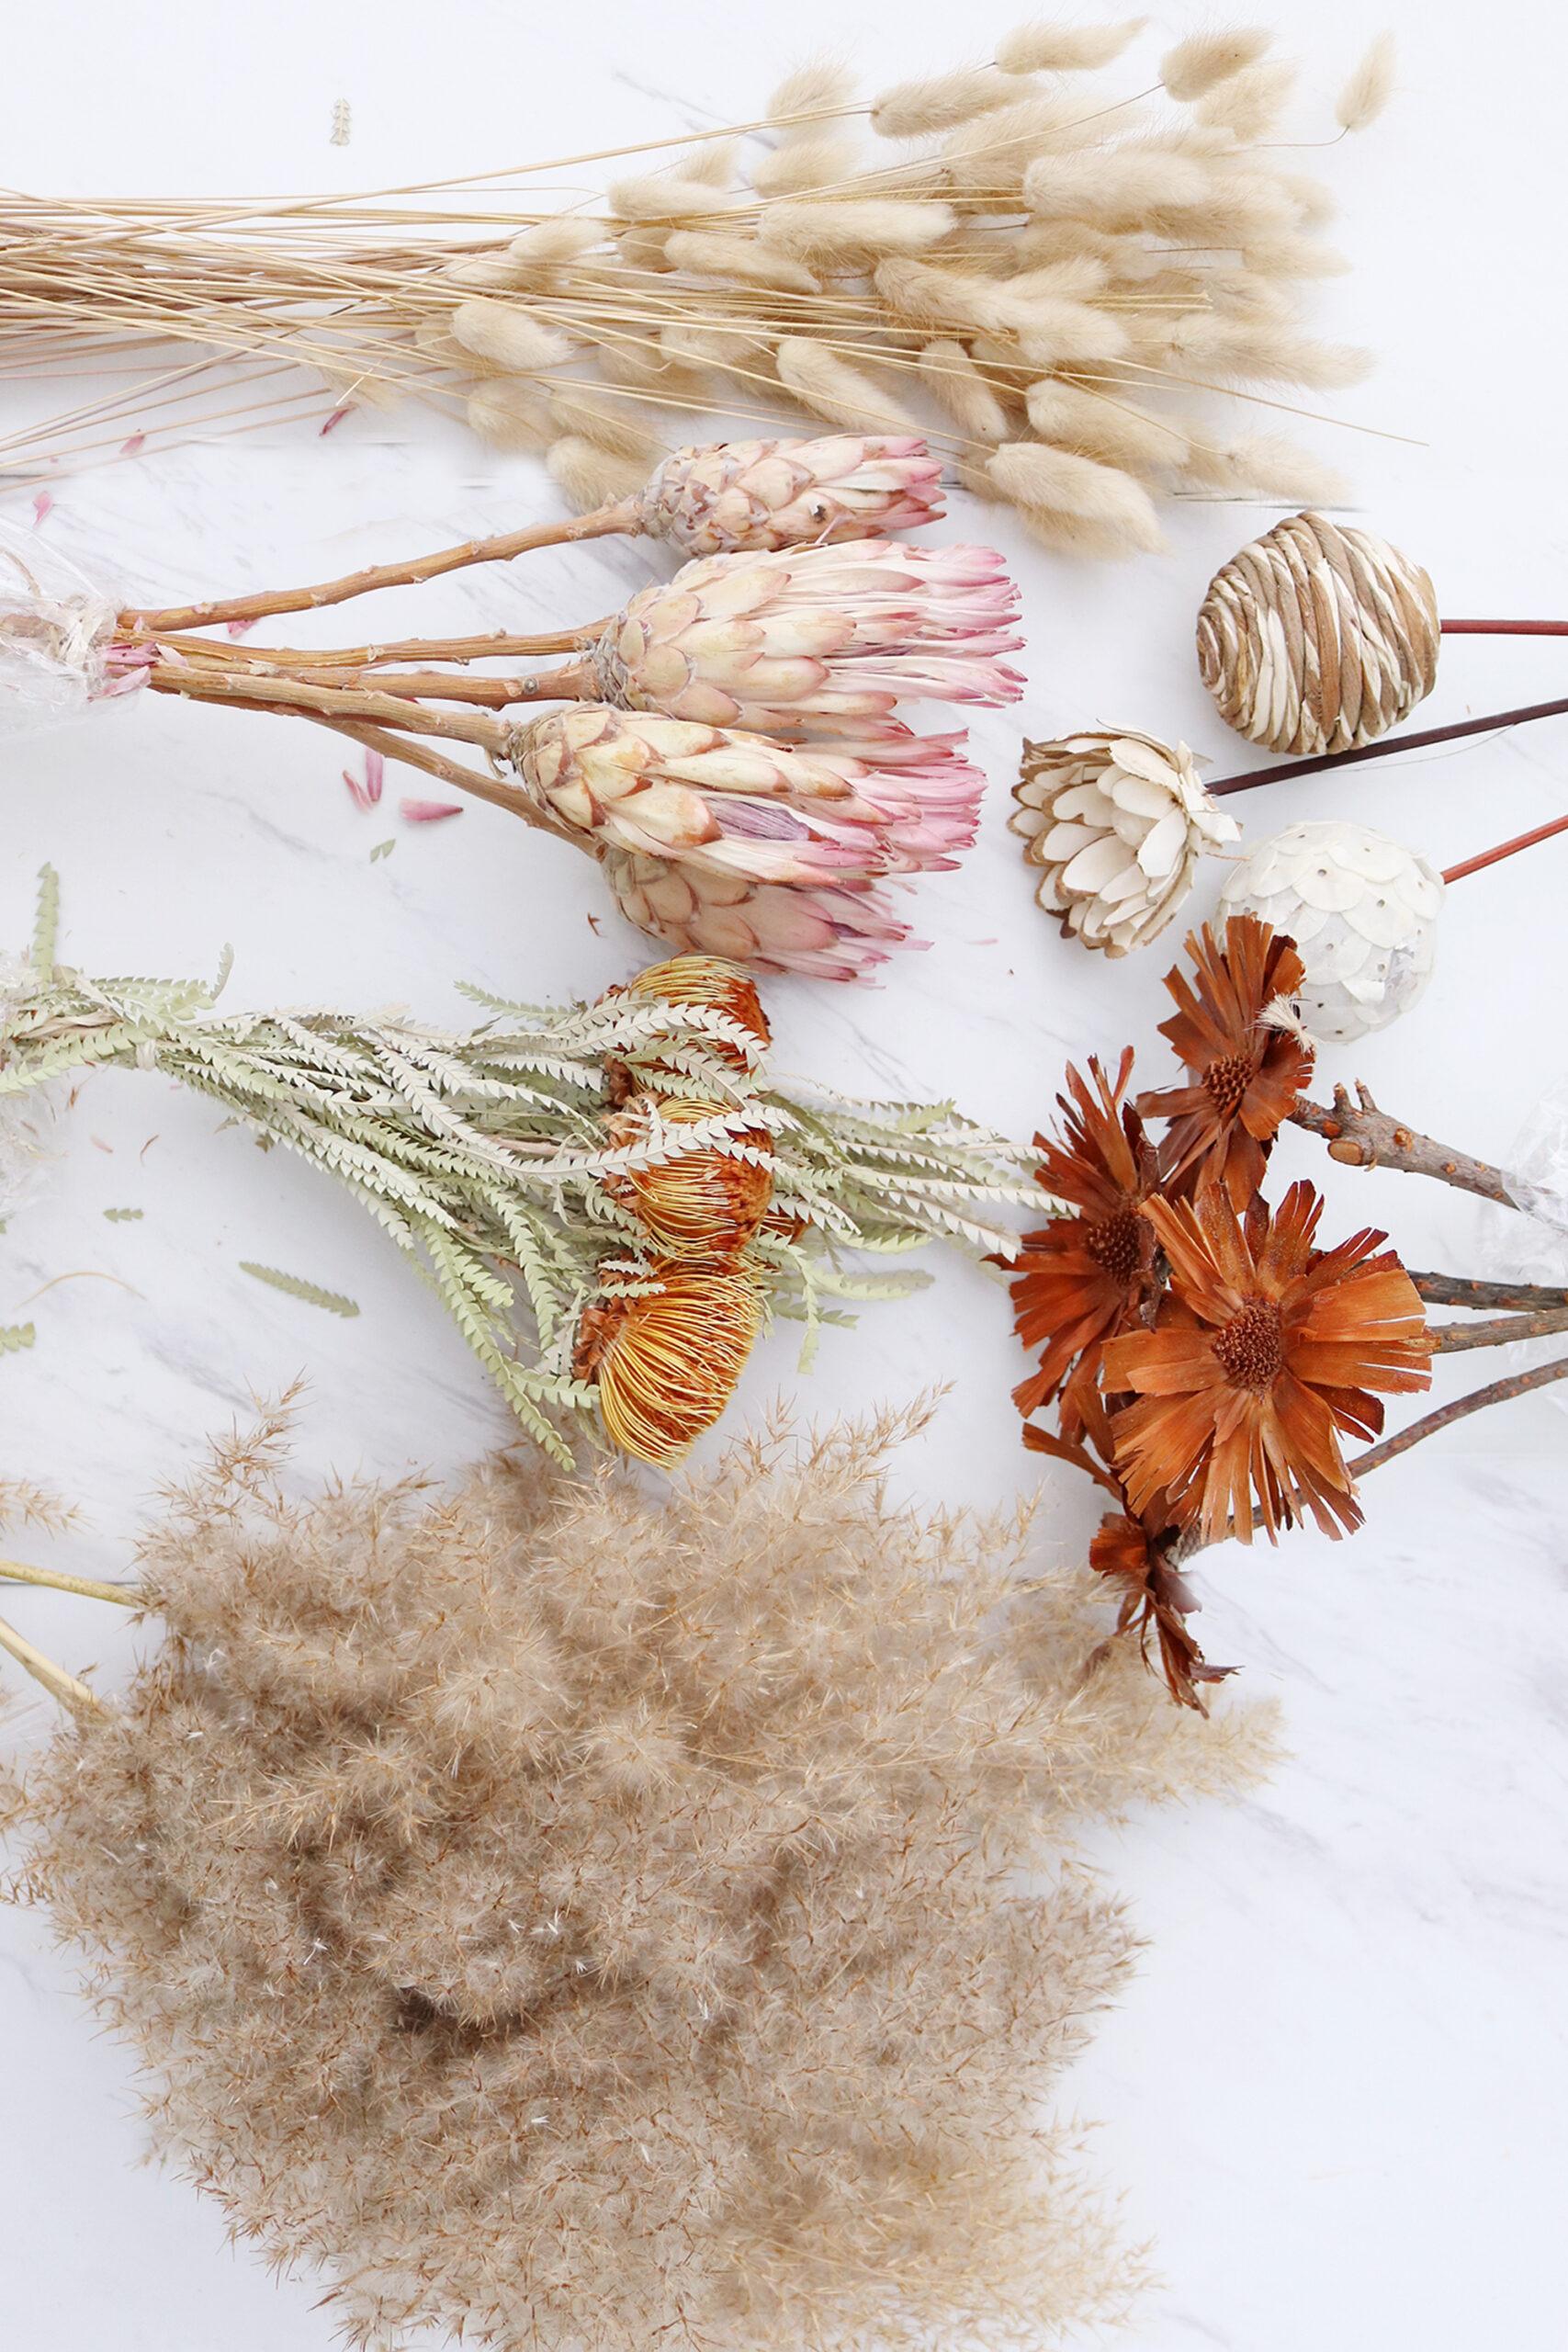 Where to find flowers for dried flower arrangements and the best flowers to choose. Pampas grass, bunny tail and protea flower arrangements    Darling Darleen Top Lifestyle Connecticut Blogger